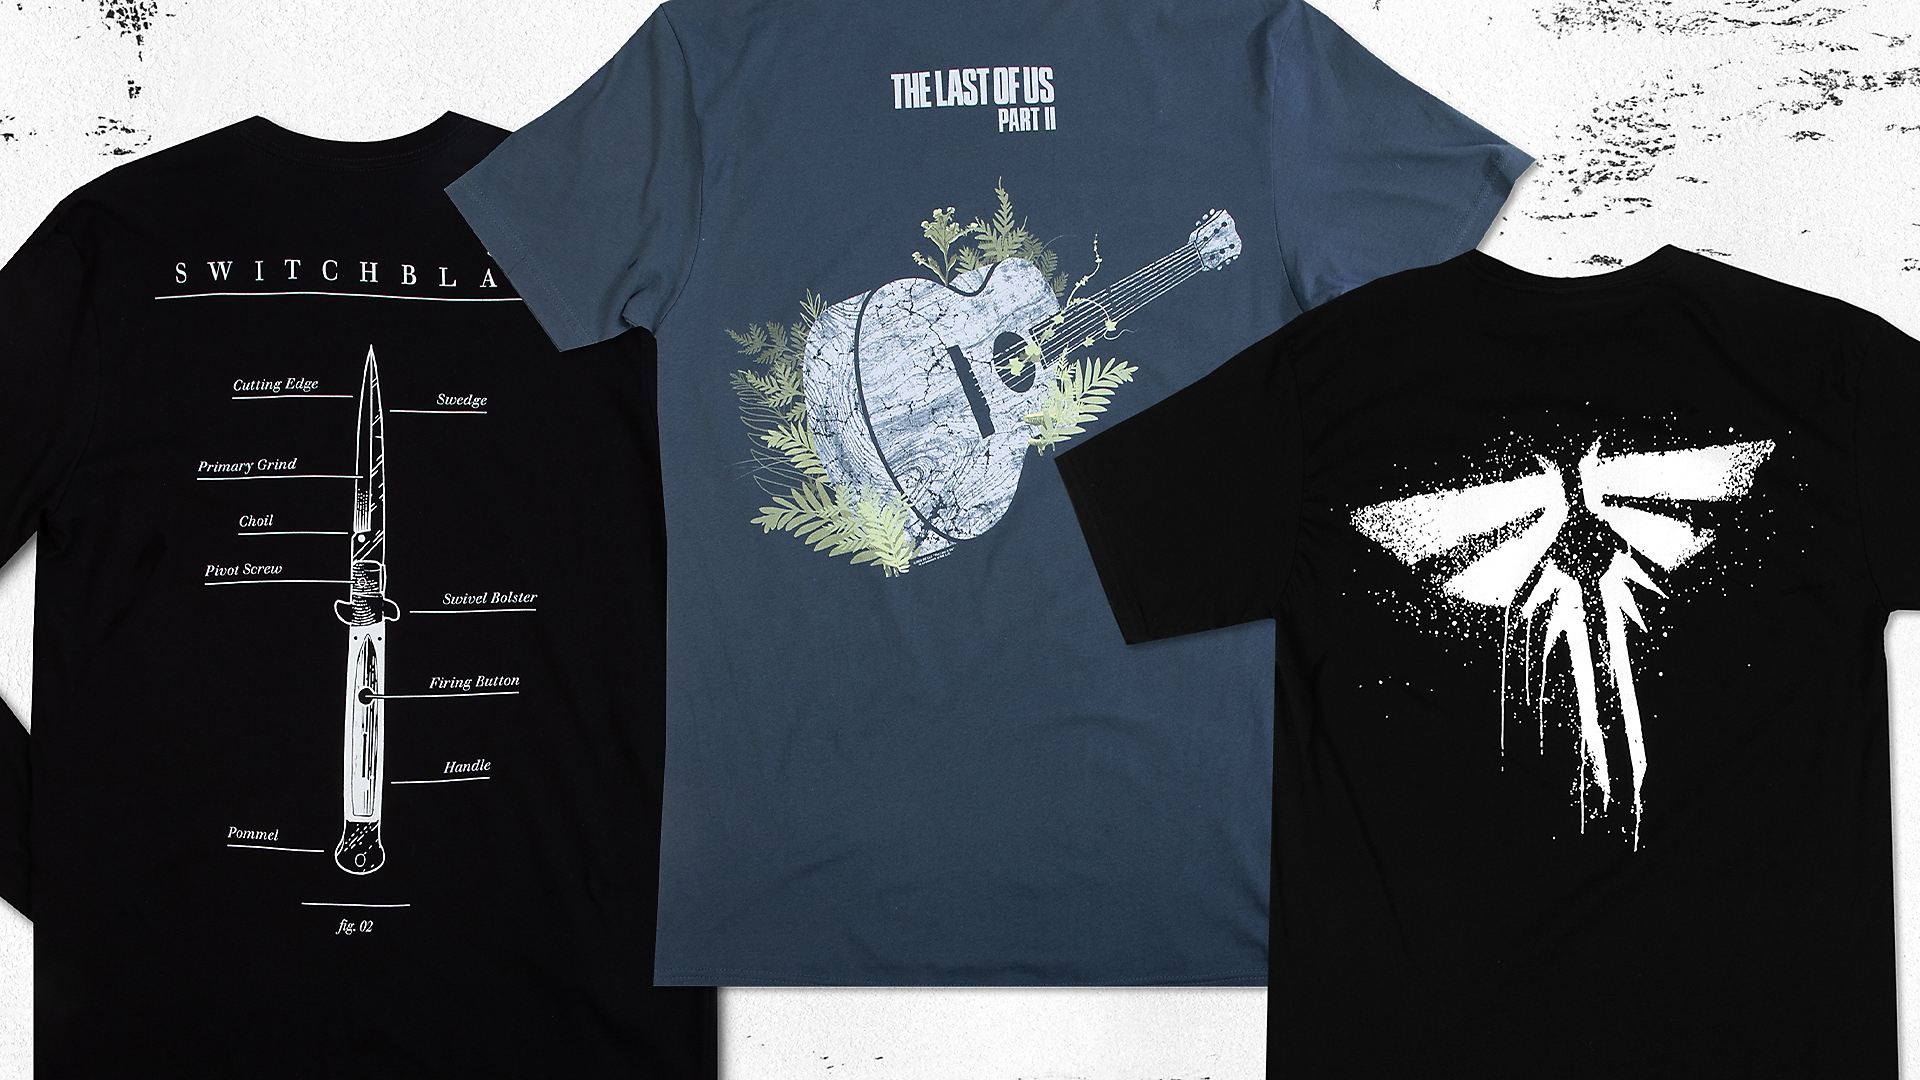 THE LAST OF US APPAREL FROM GRAPH